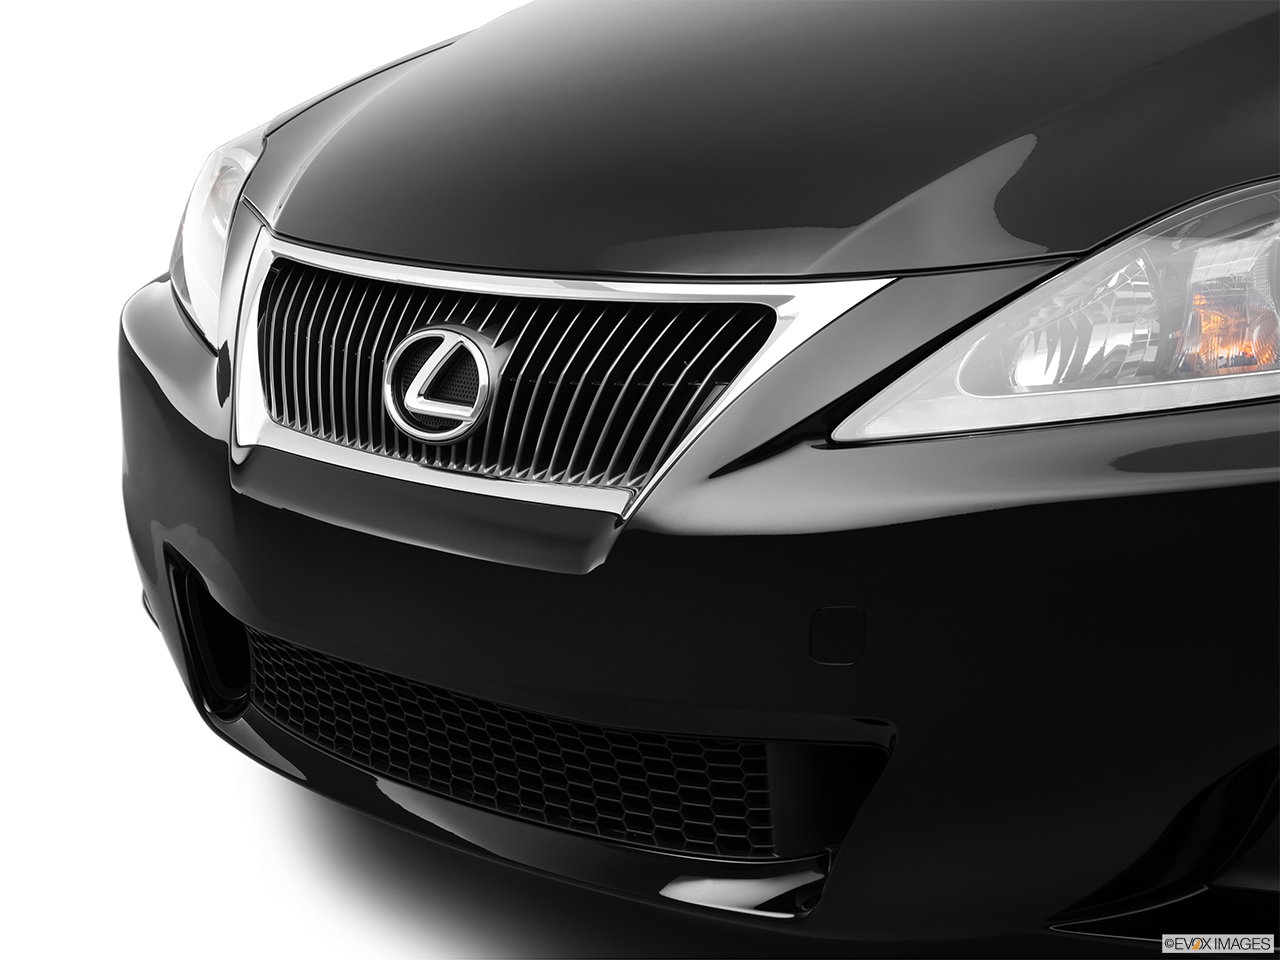 2012 Lexus IS 250 IS250 Close up of Grill.